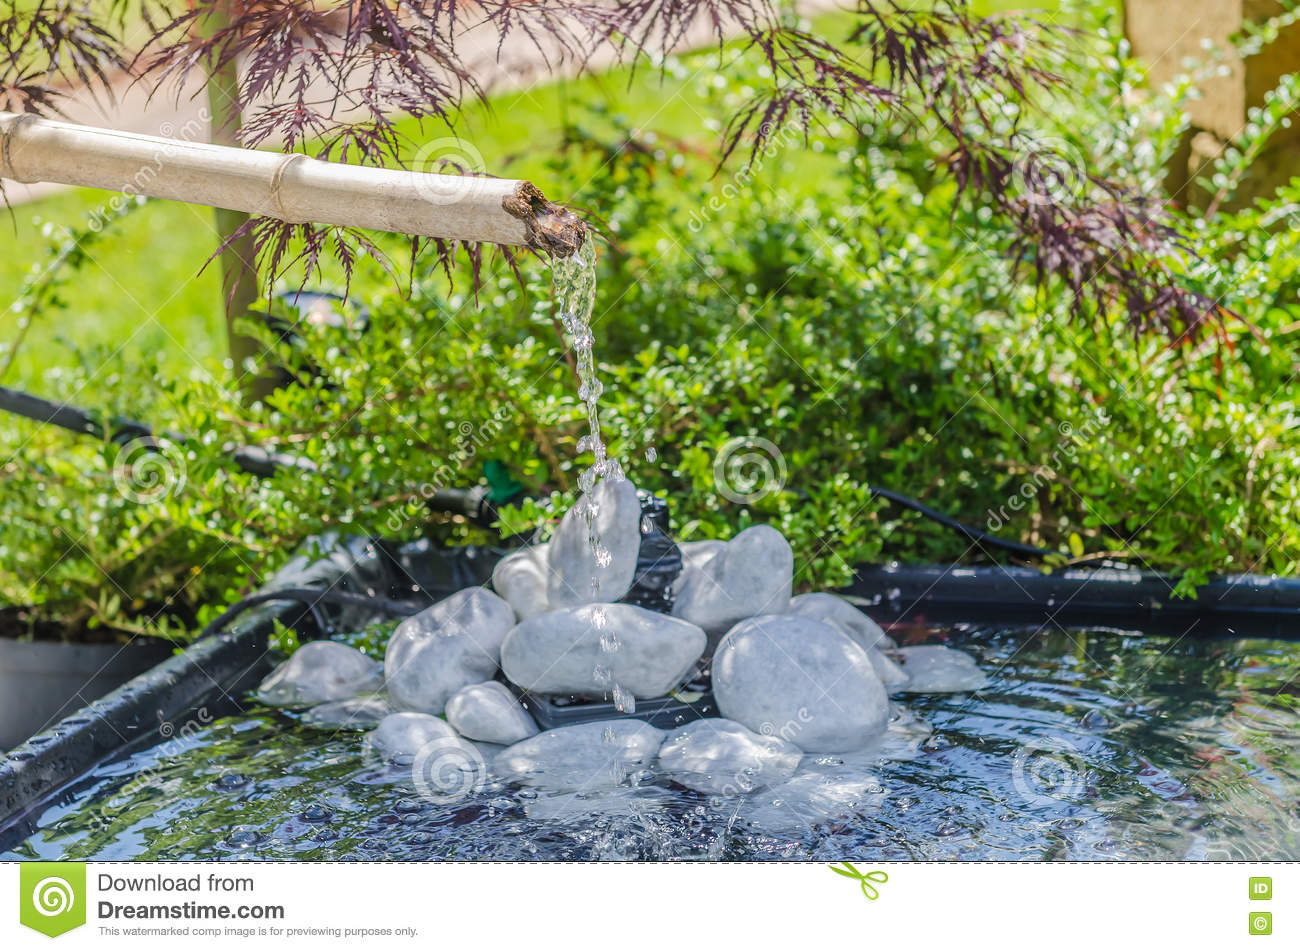 jardin japonais avec la fontaine en bambou photo stock image du culture mouvement 73446894. Black Bedroom Furniture Sets. Home Design Ideas